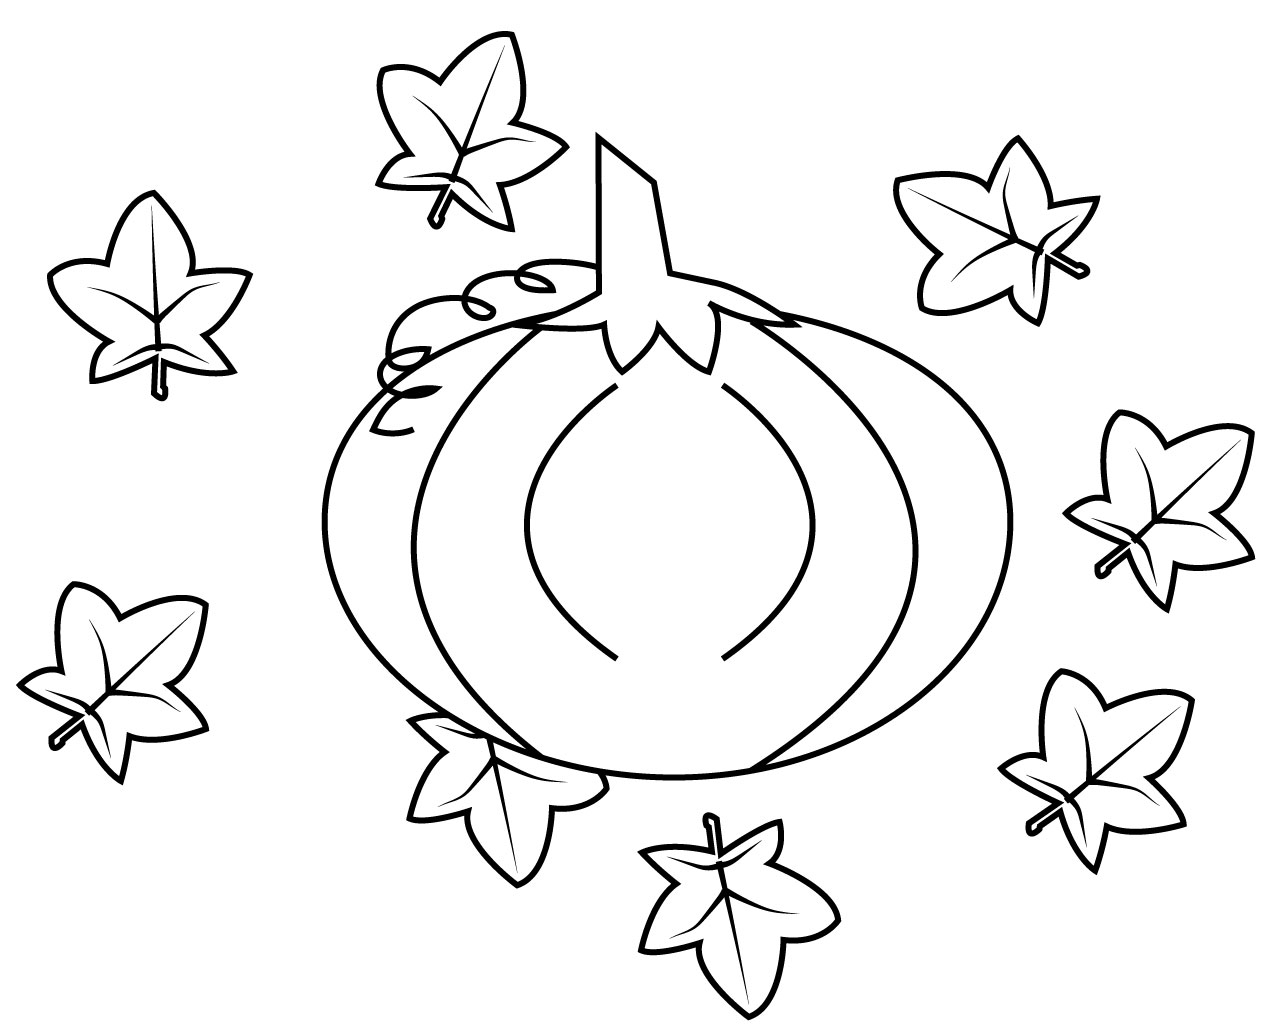 pumpkin and leaves coloring pages - photo#5